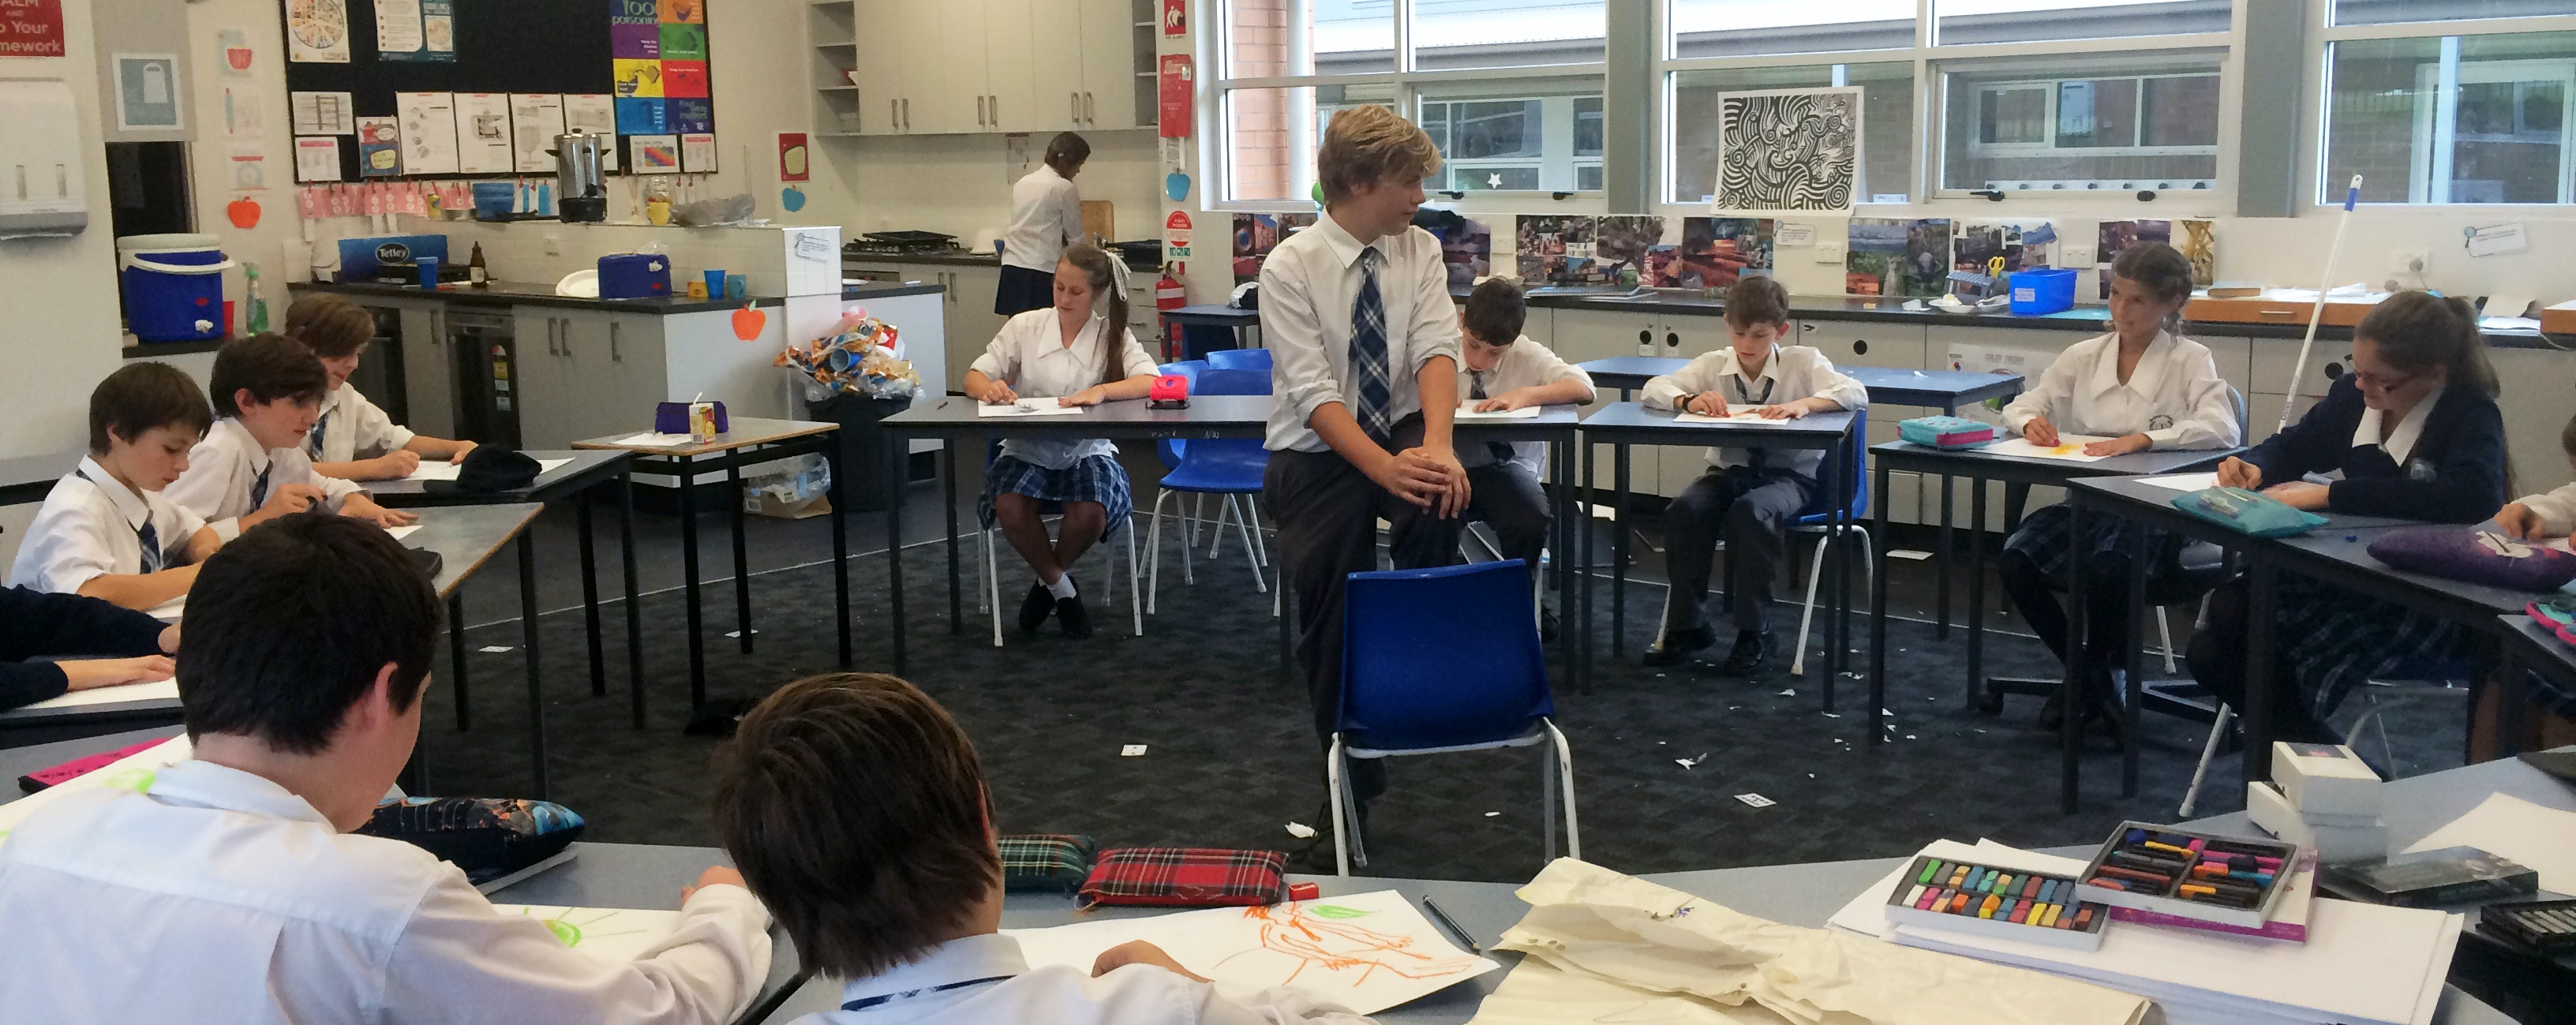 Why is teaching kids to draw not a more important part of the curriculum?